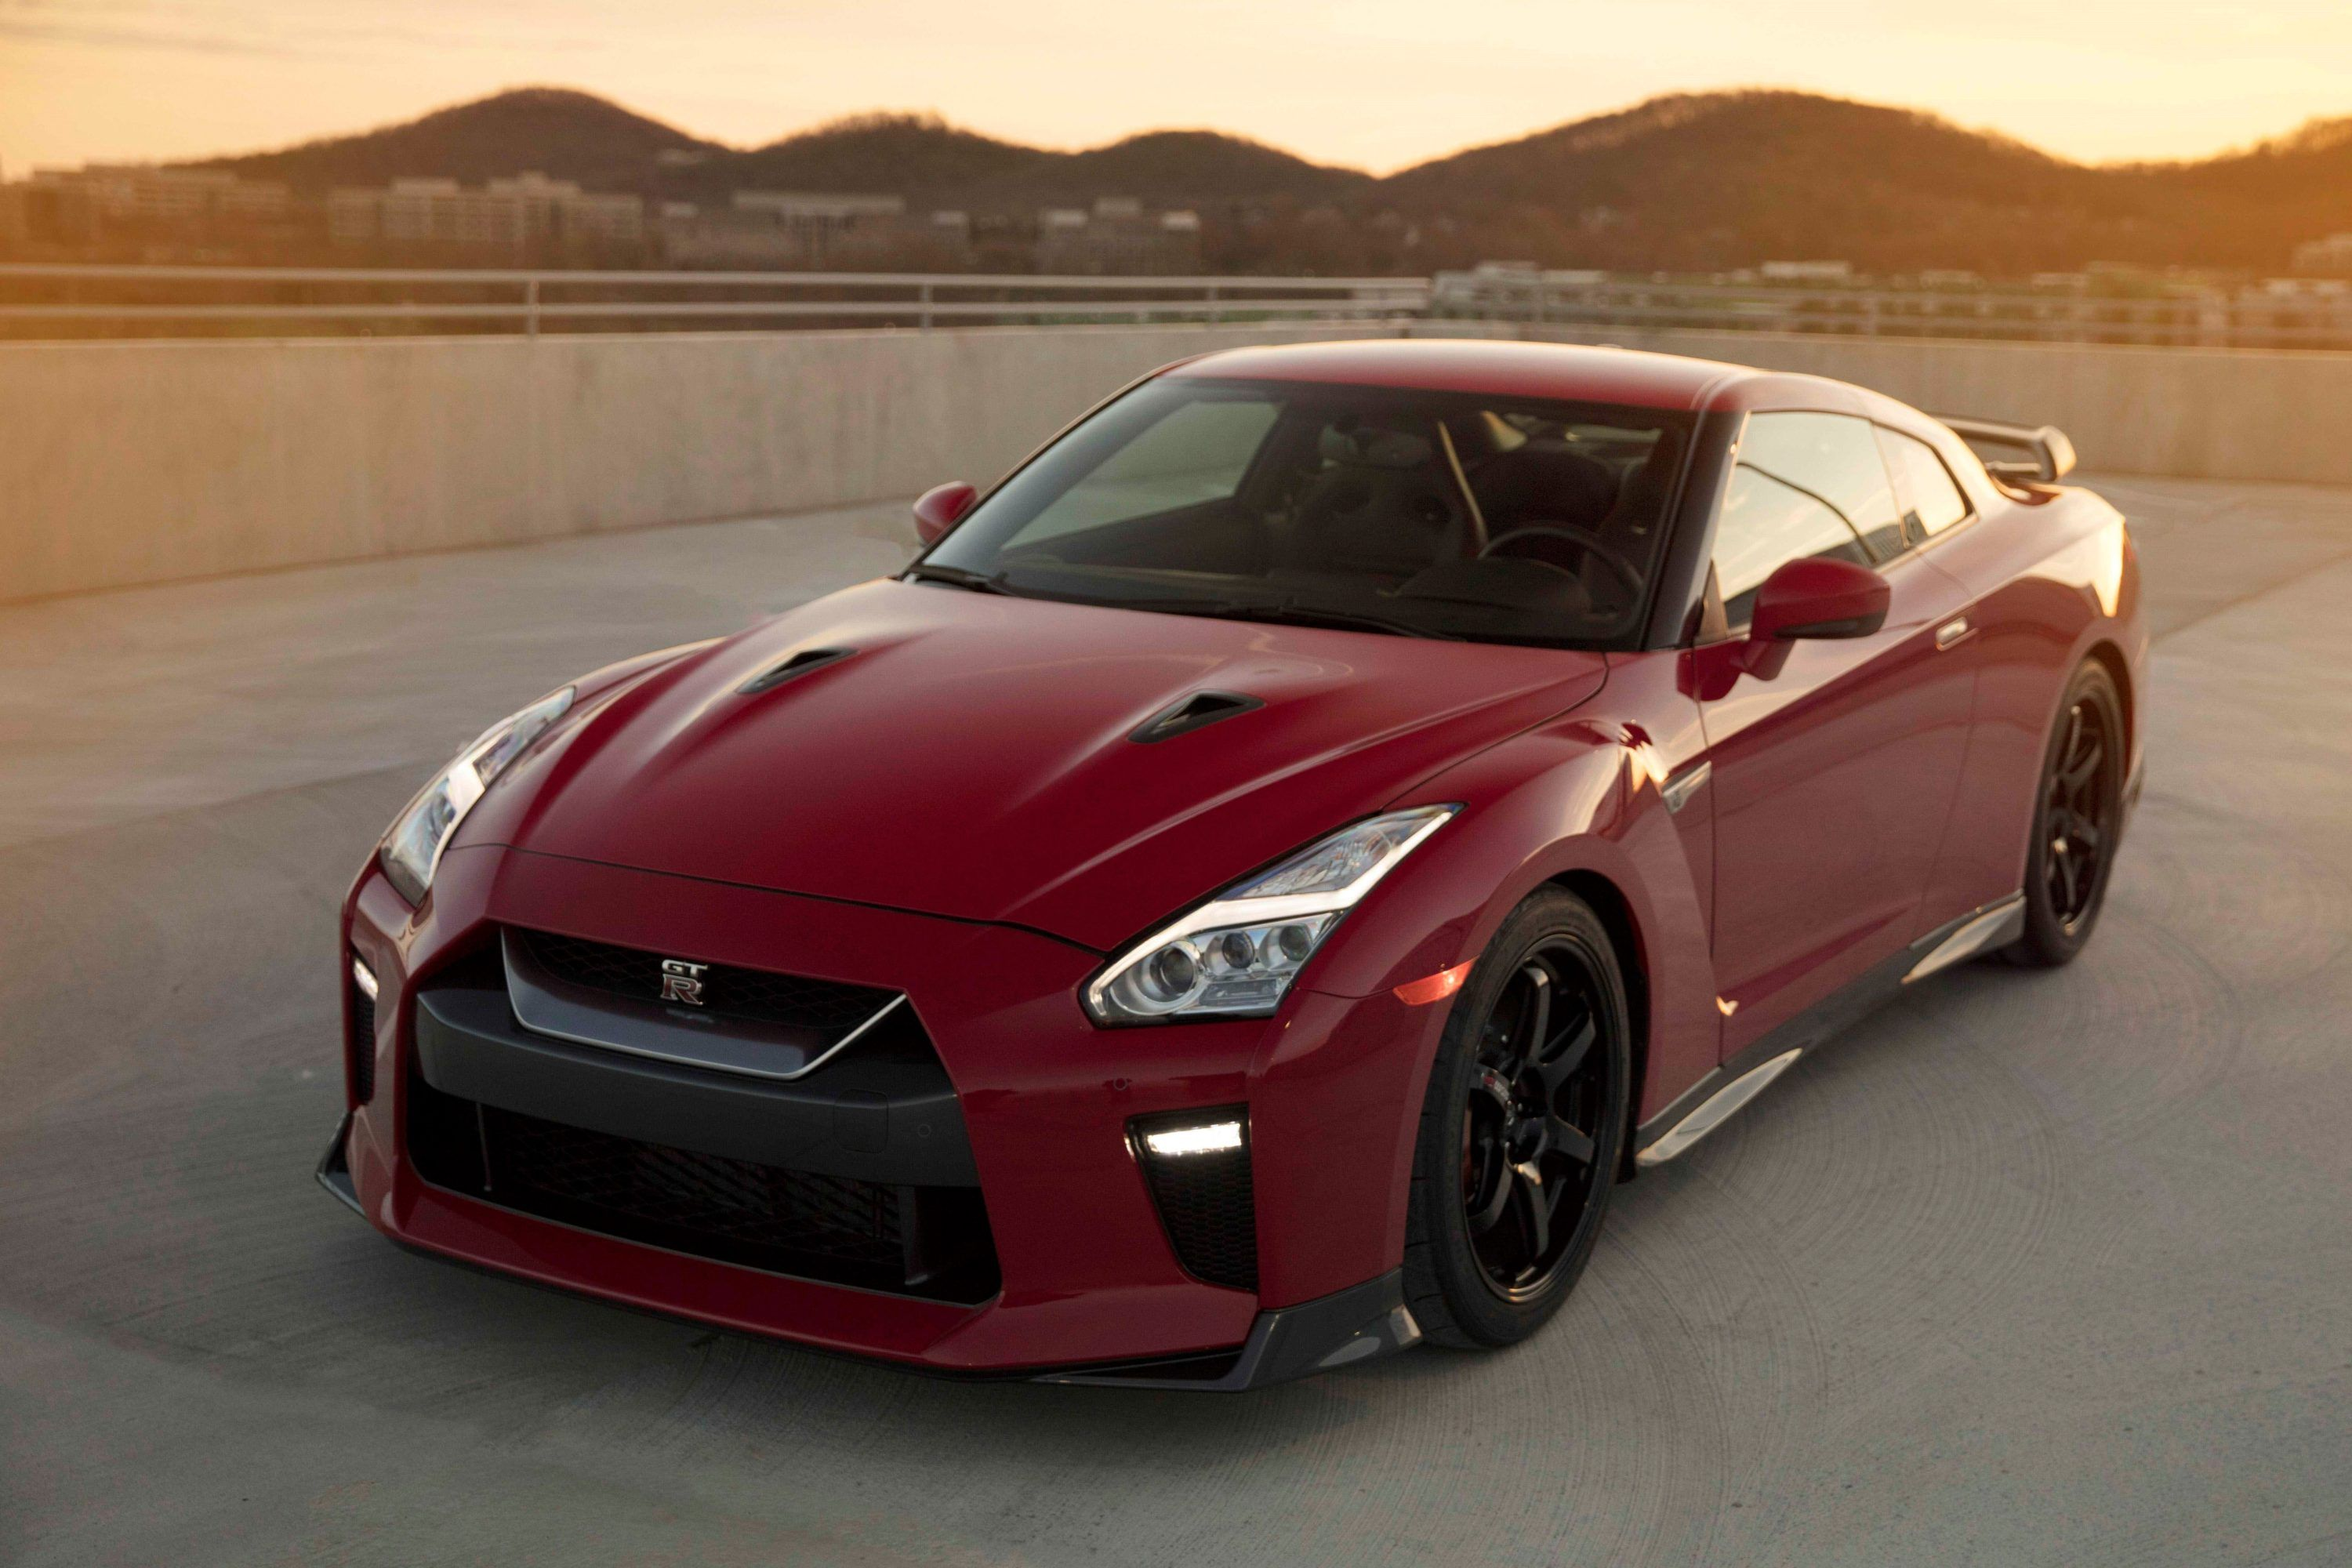 Nissan Gt R Track Edition To Make Us Debut At New York Auto Show Trackworthy Nissan Gt R Nissan Gt Nissan Gtr 2014 nissan gt r track edition 2